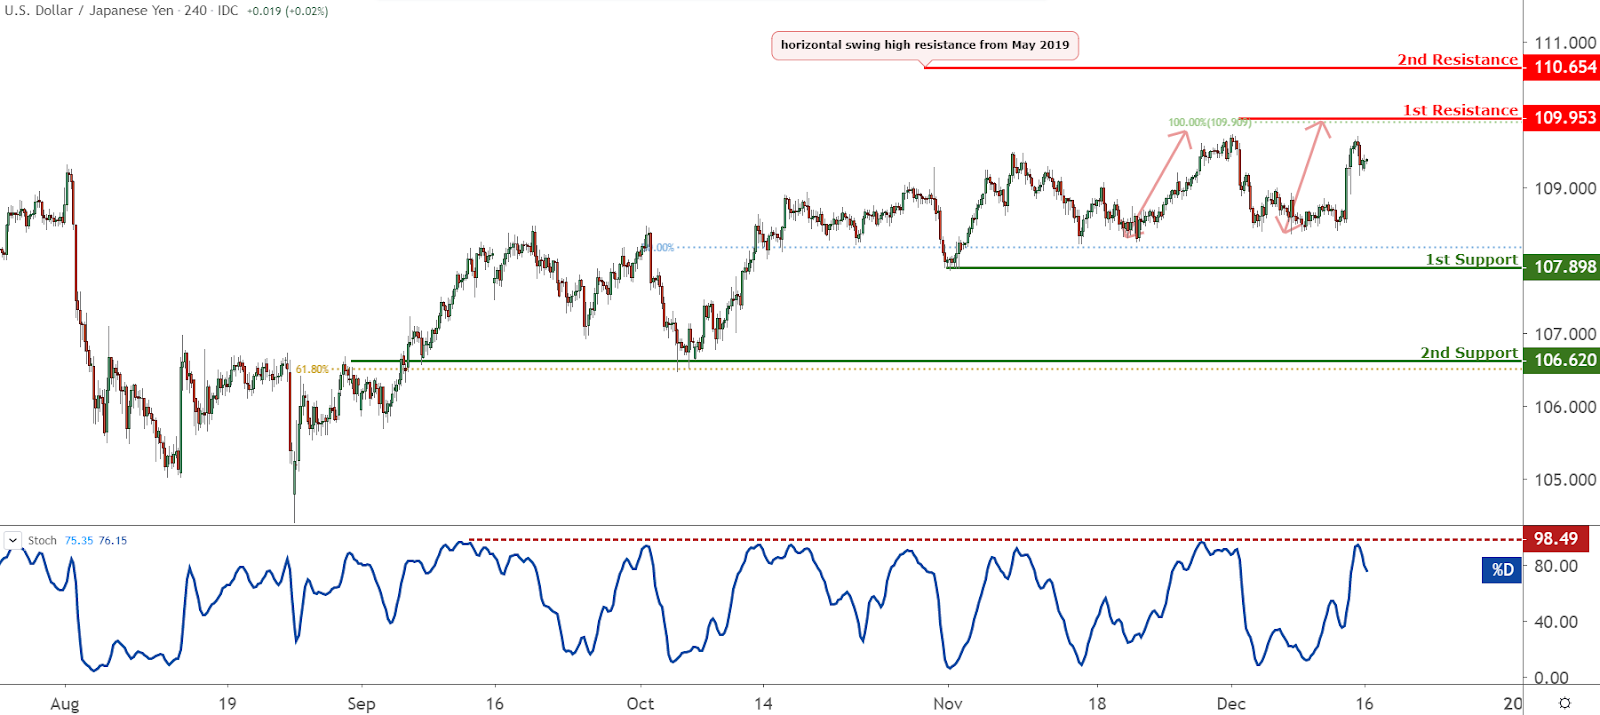 USDJPY Chart, Source: TradingView.com